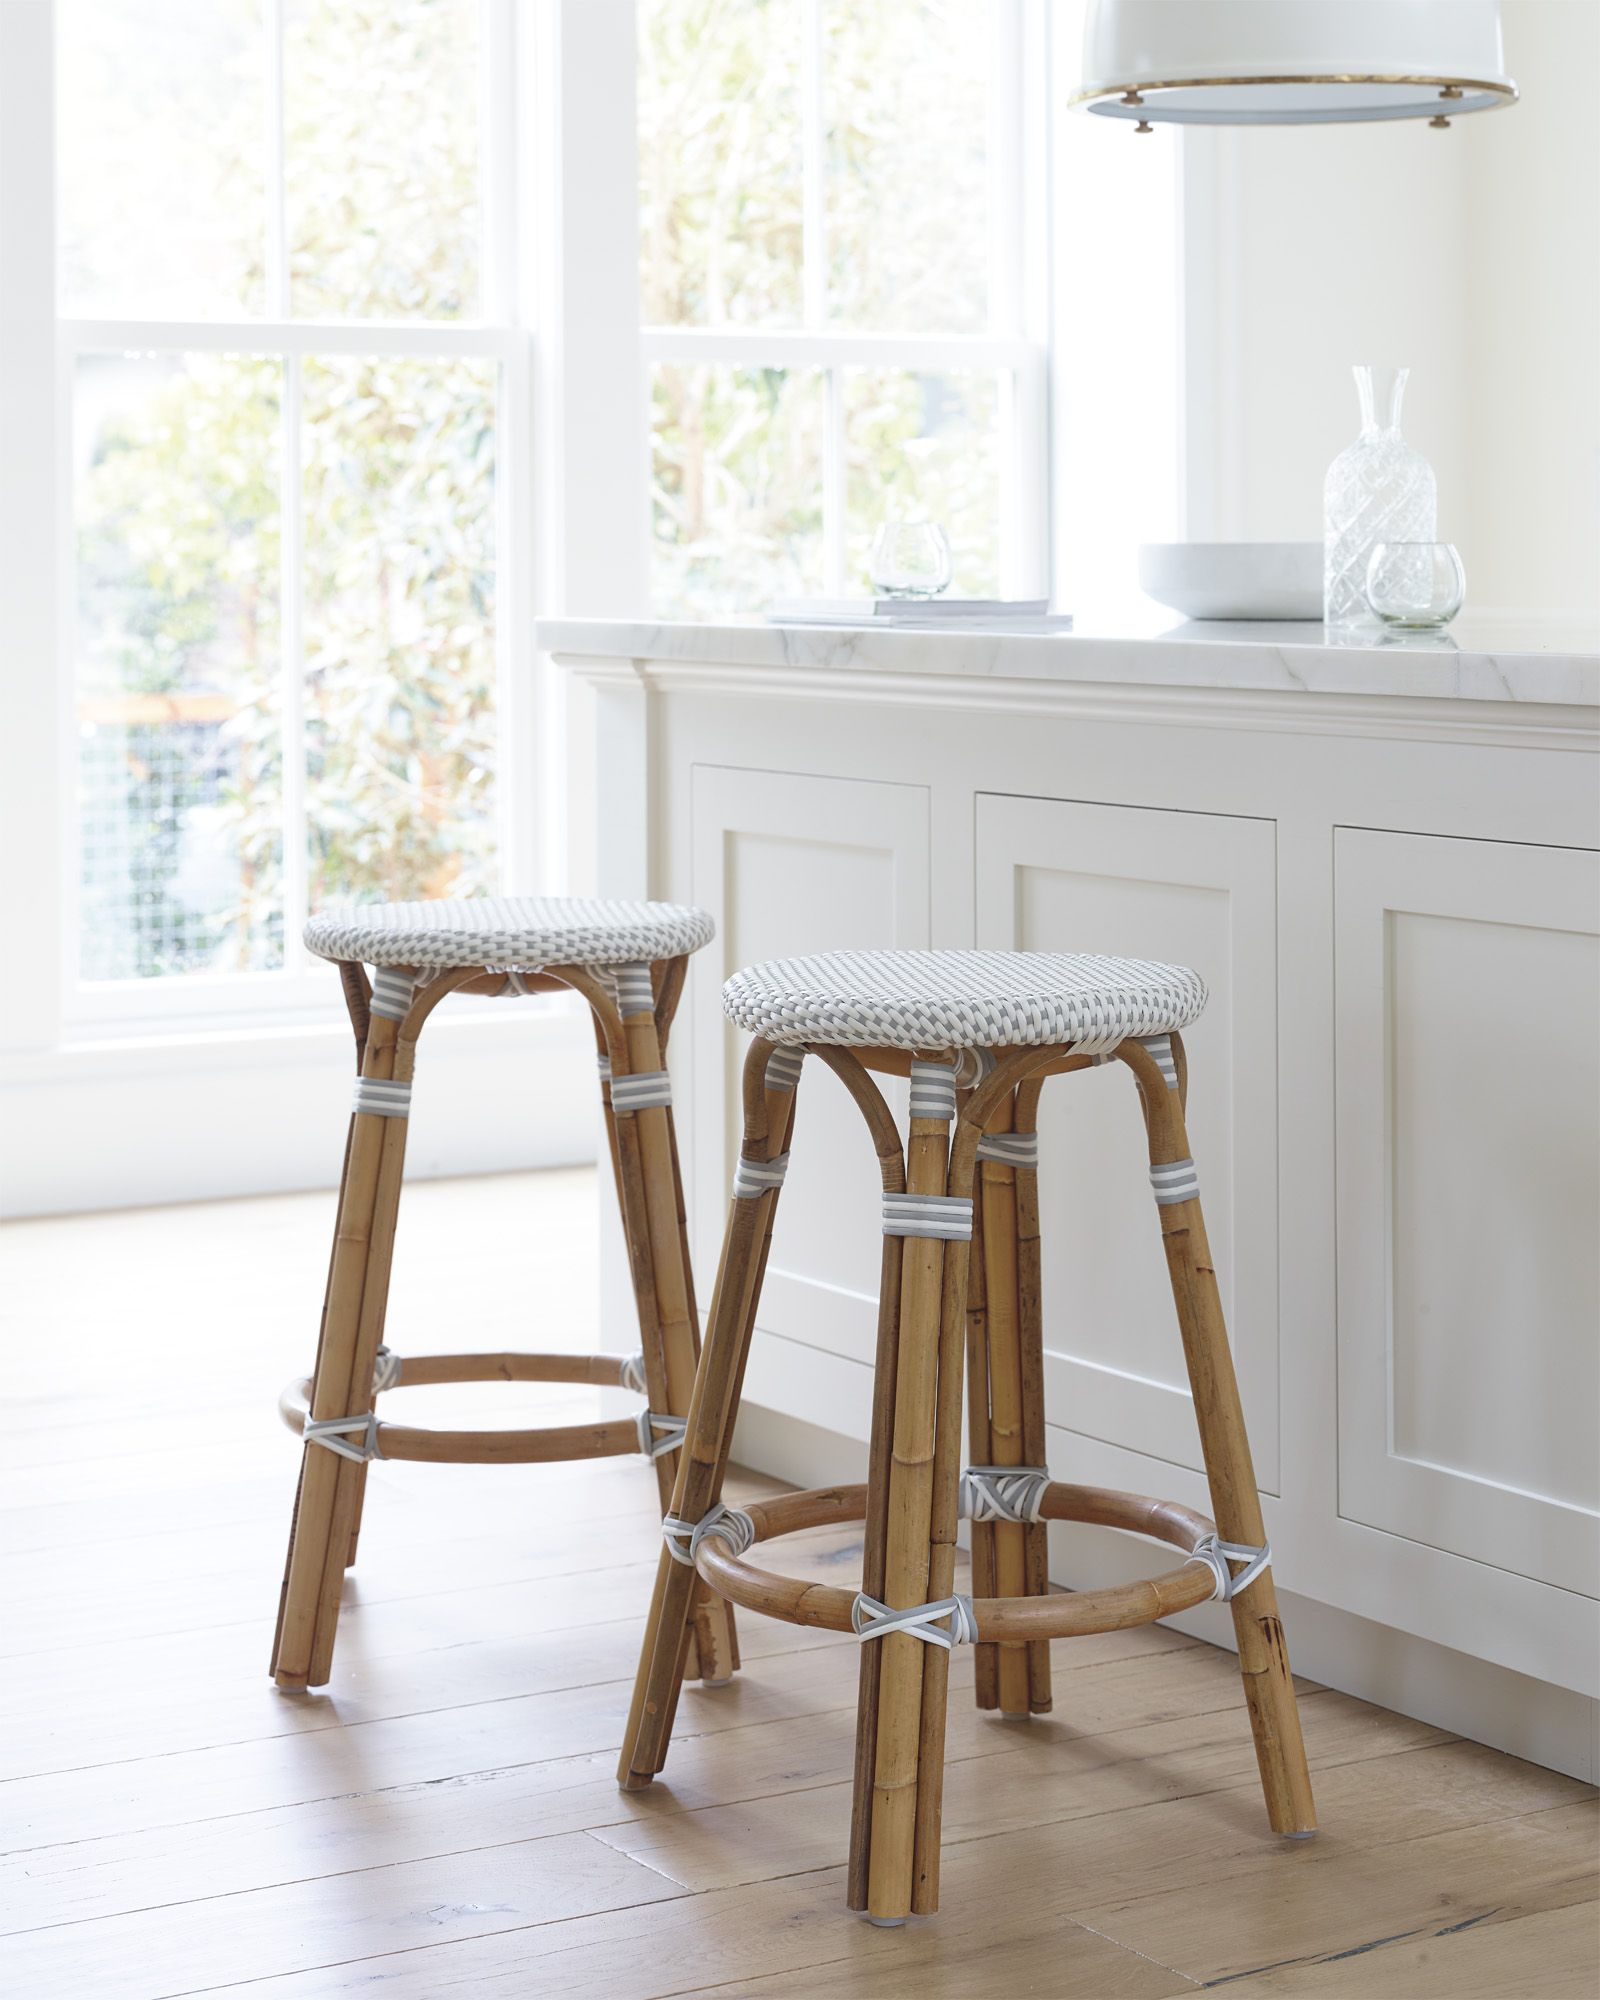 Riviera Backless Counter Stool Counter Stools Backless Backless